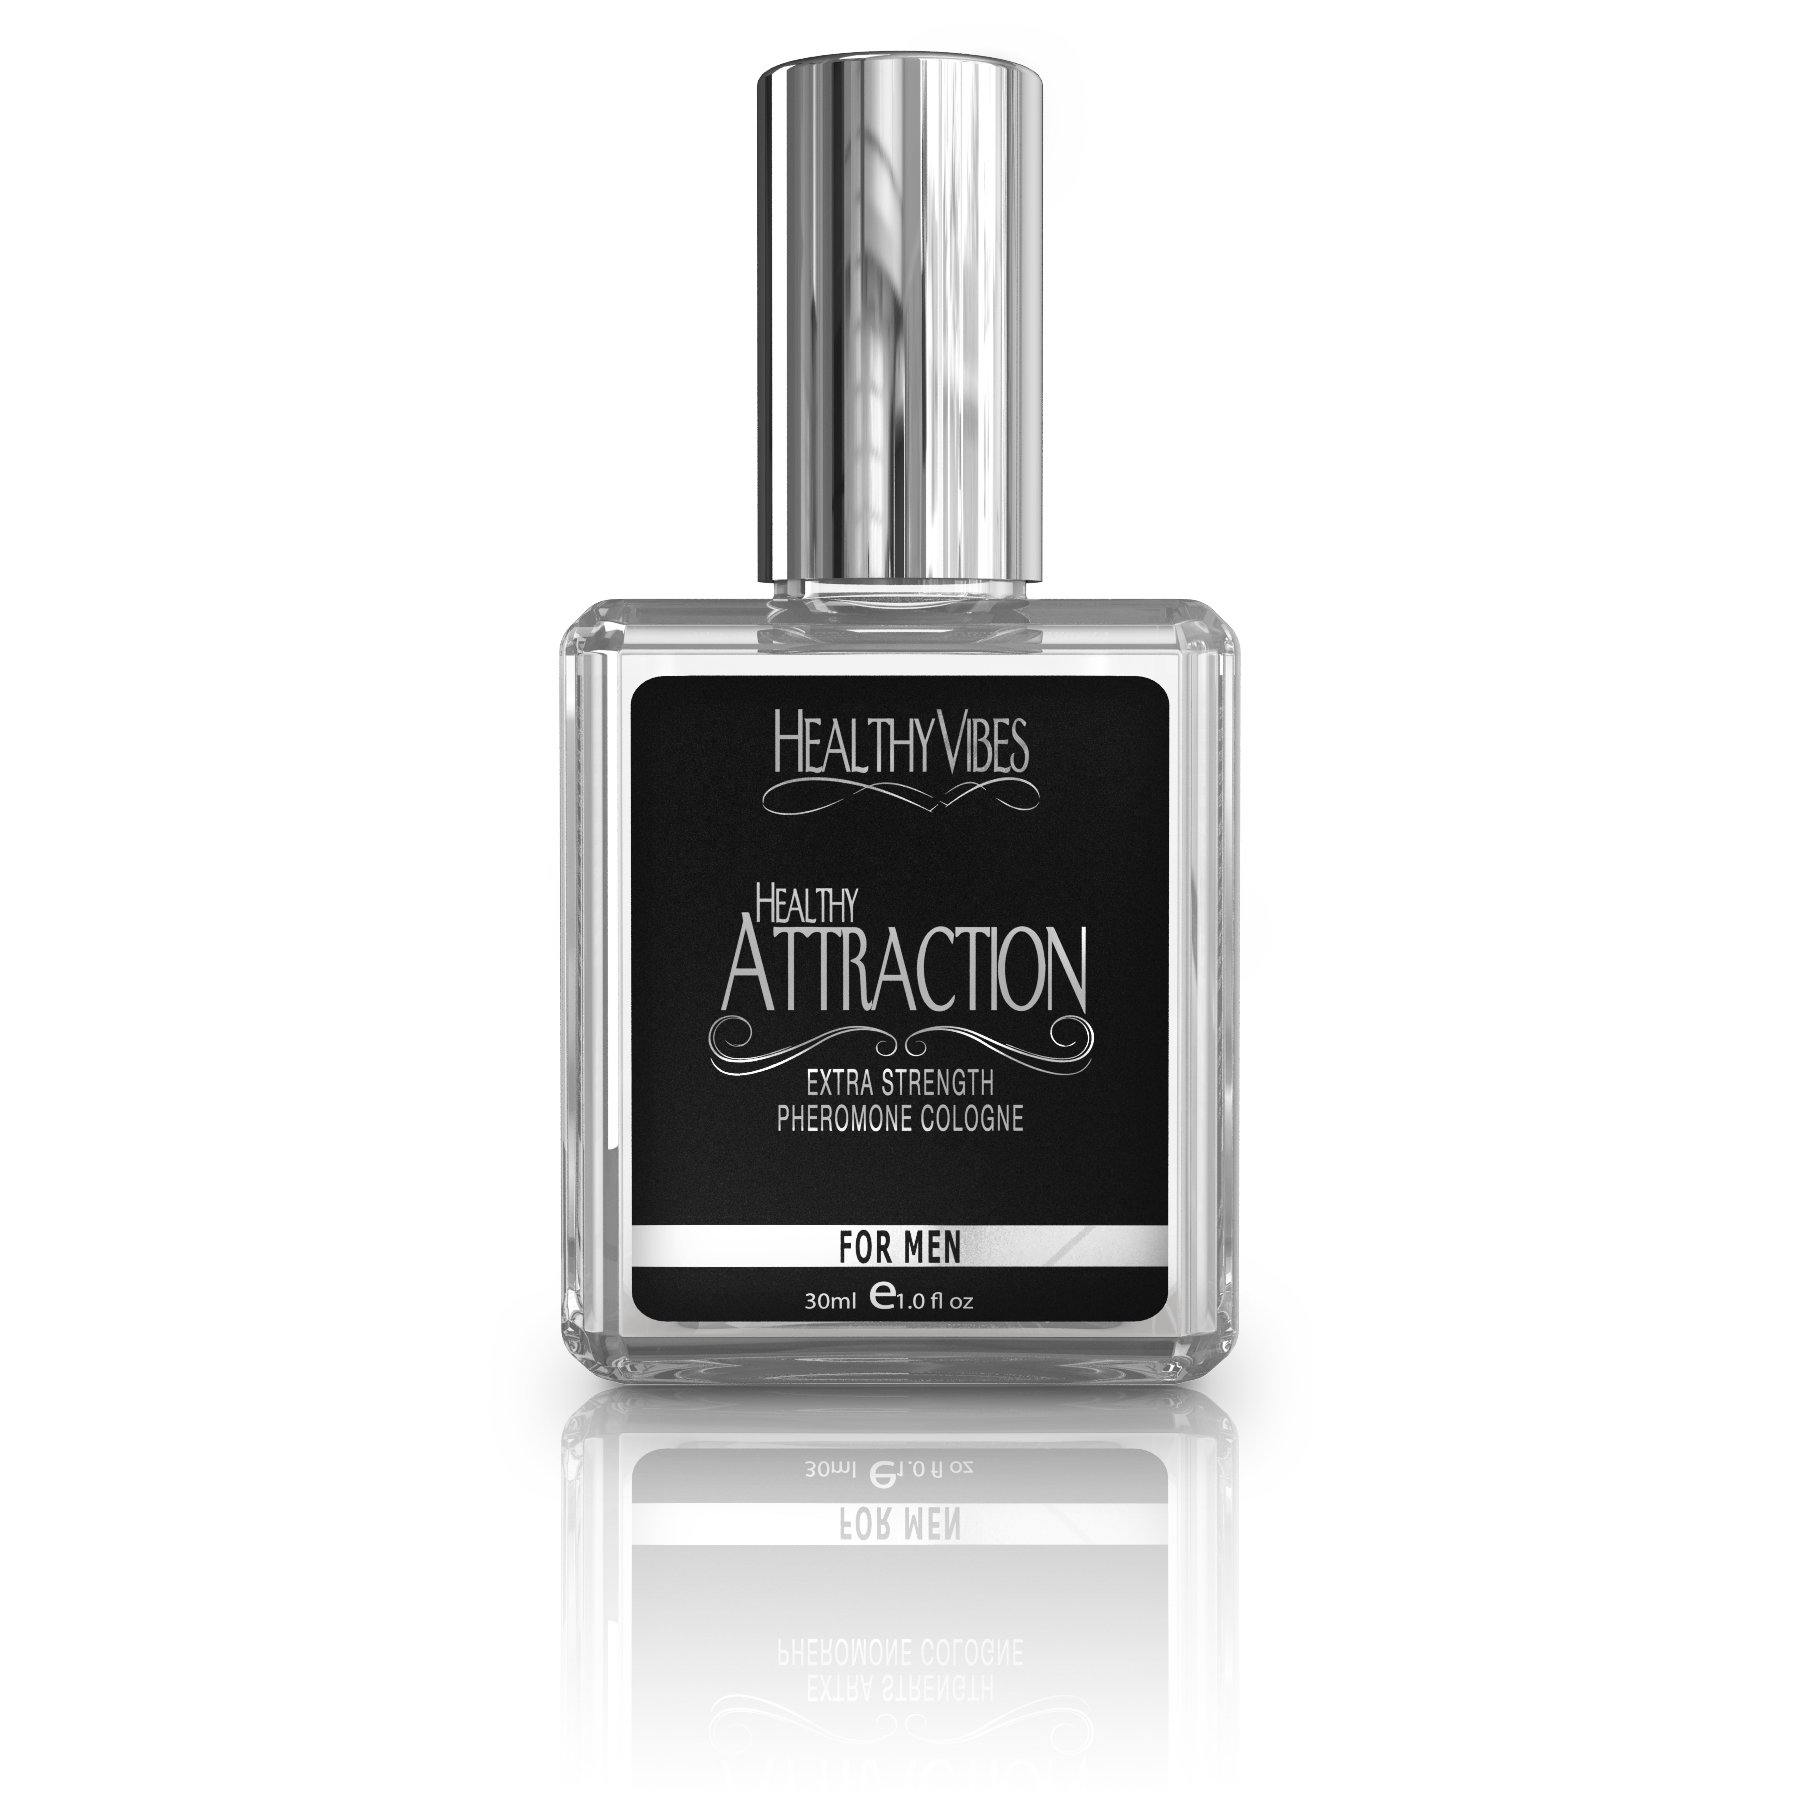 Healthy Attraction Pheromone Cologne 1 Fl Oz Bold Scent Extra Strength Pheromone Oil - Infused with Andronone and Copulandrone Pheromones for Maximum Potency - Made in the USA